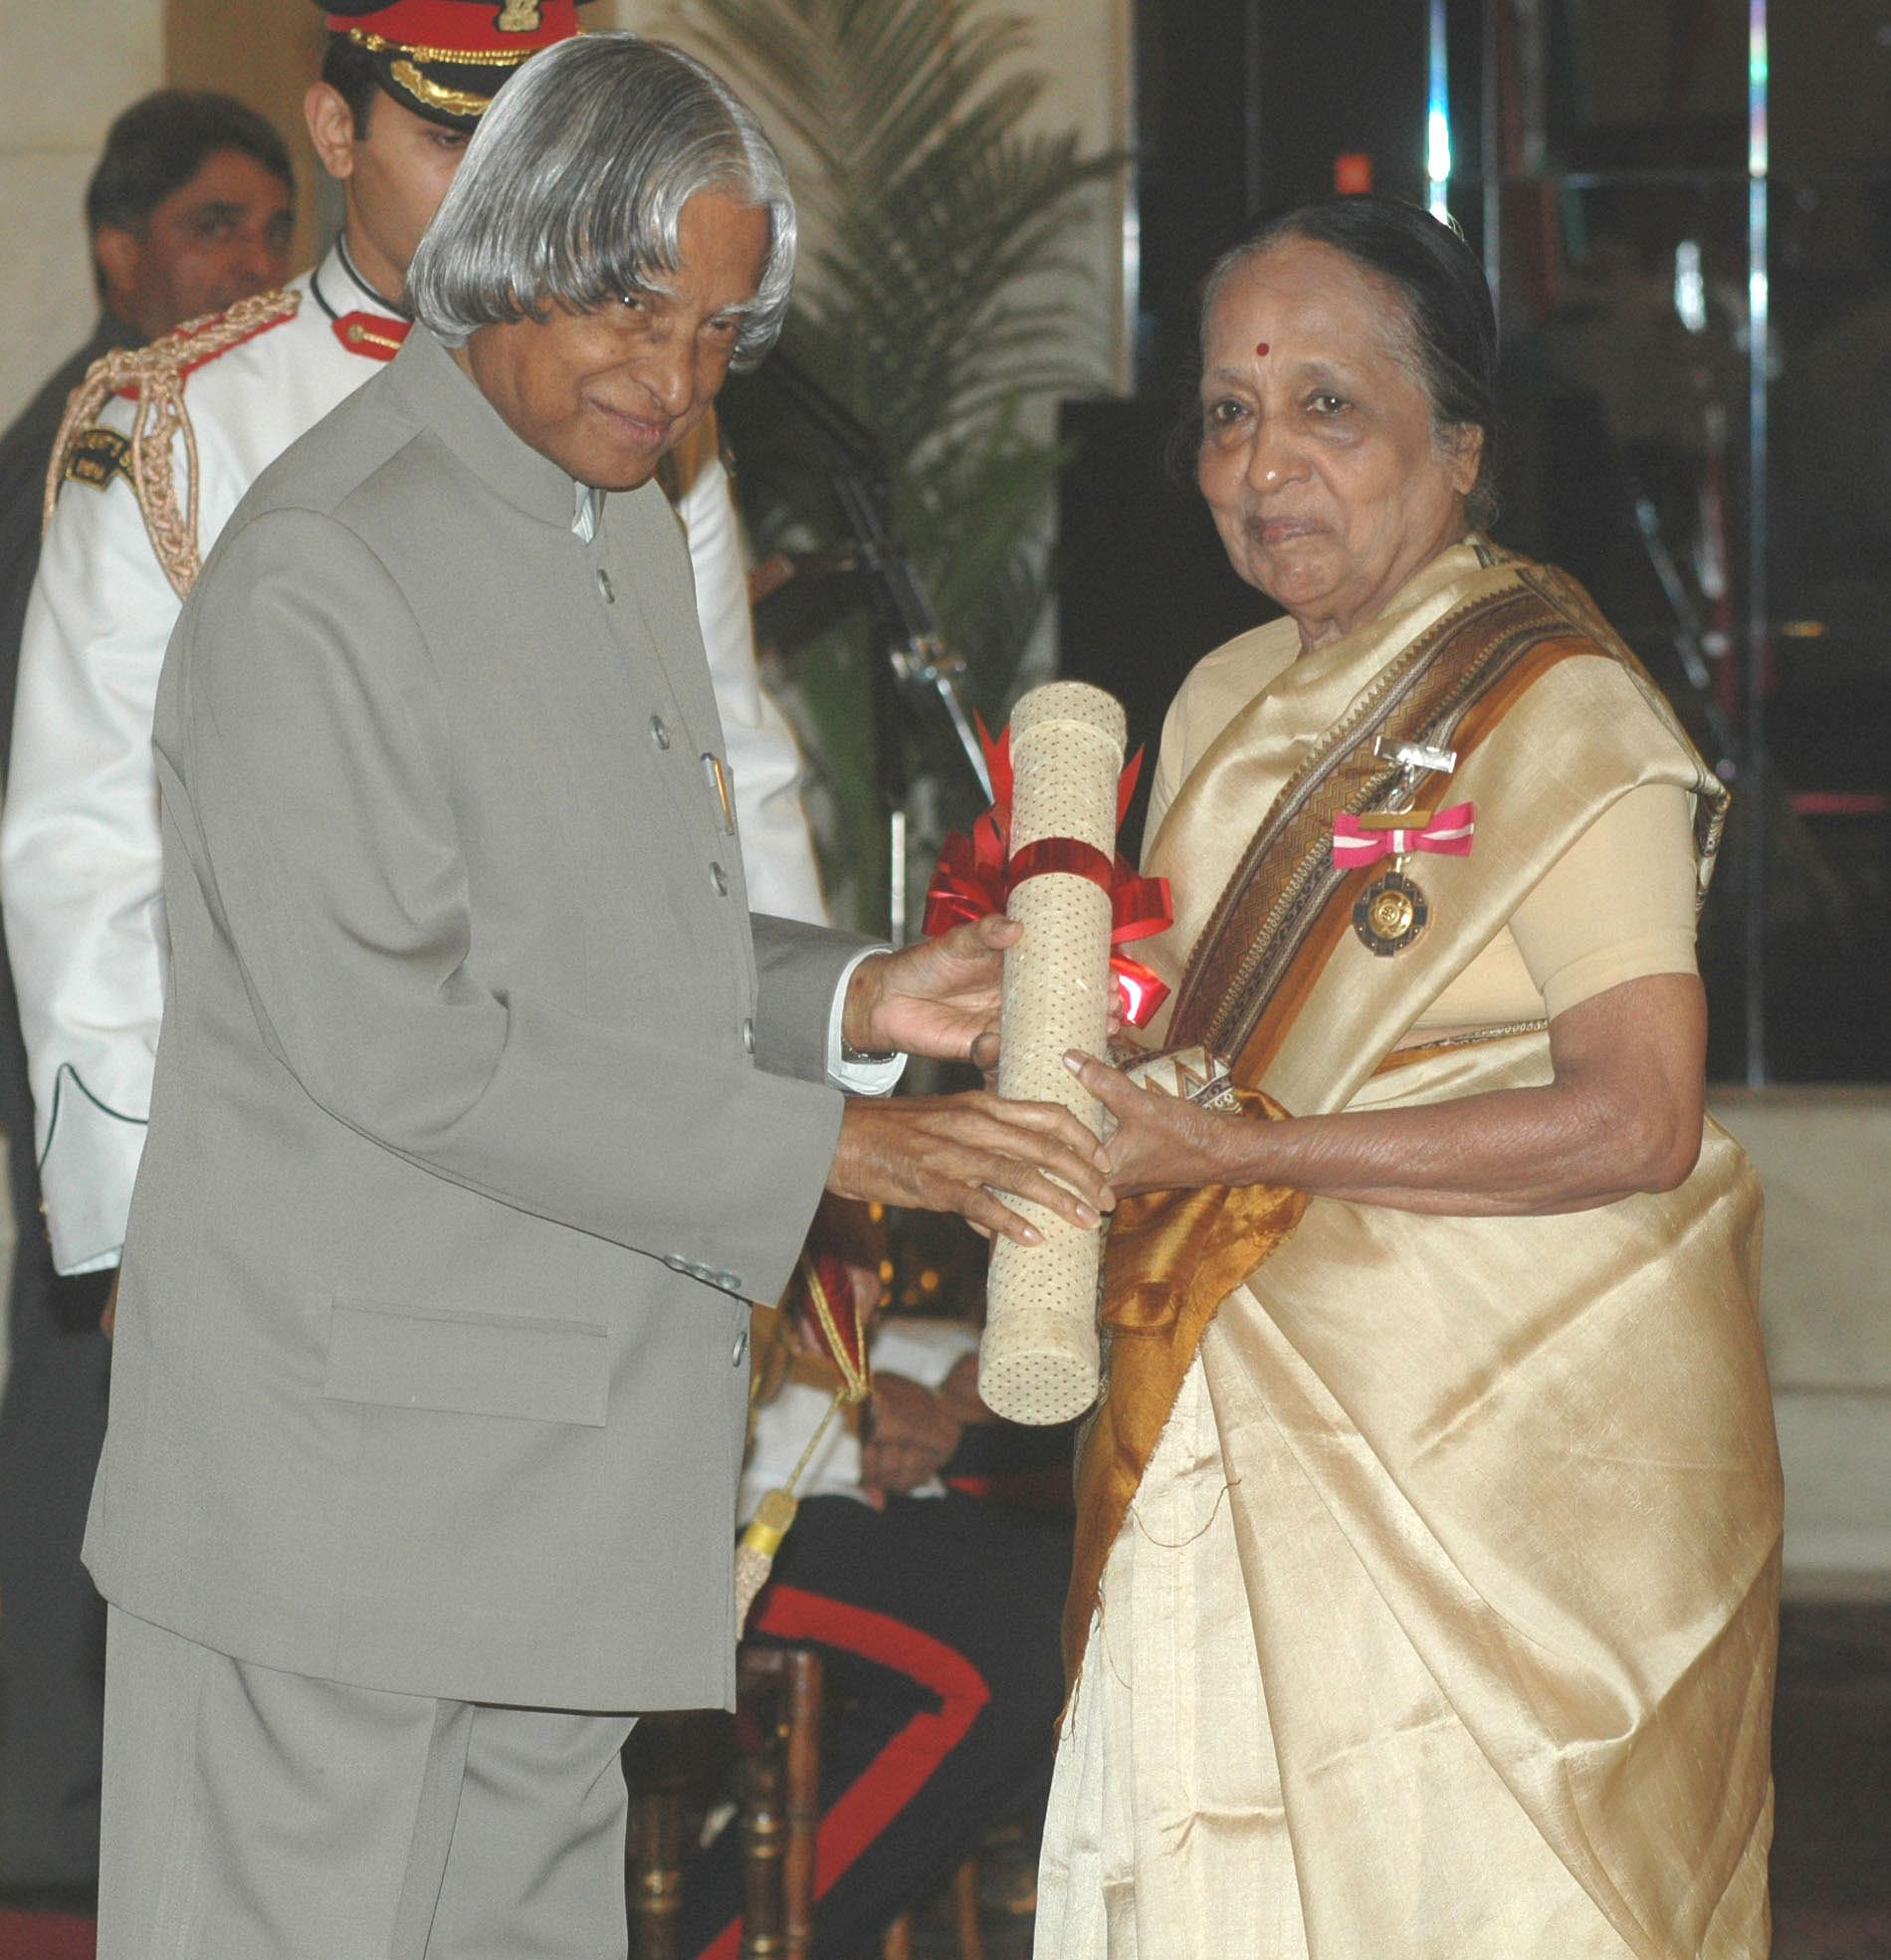 A proud moment for Dr V Shanta when she was conferred with the Padma Bhushan, the third highest civilian award in India.